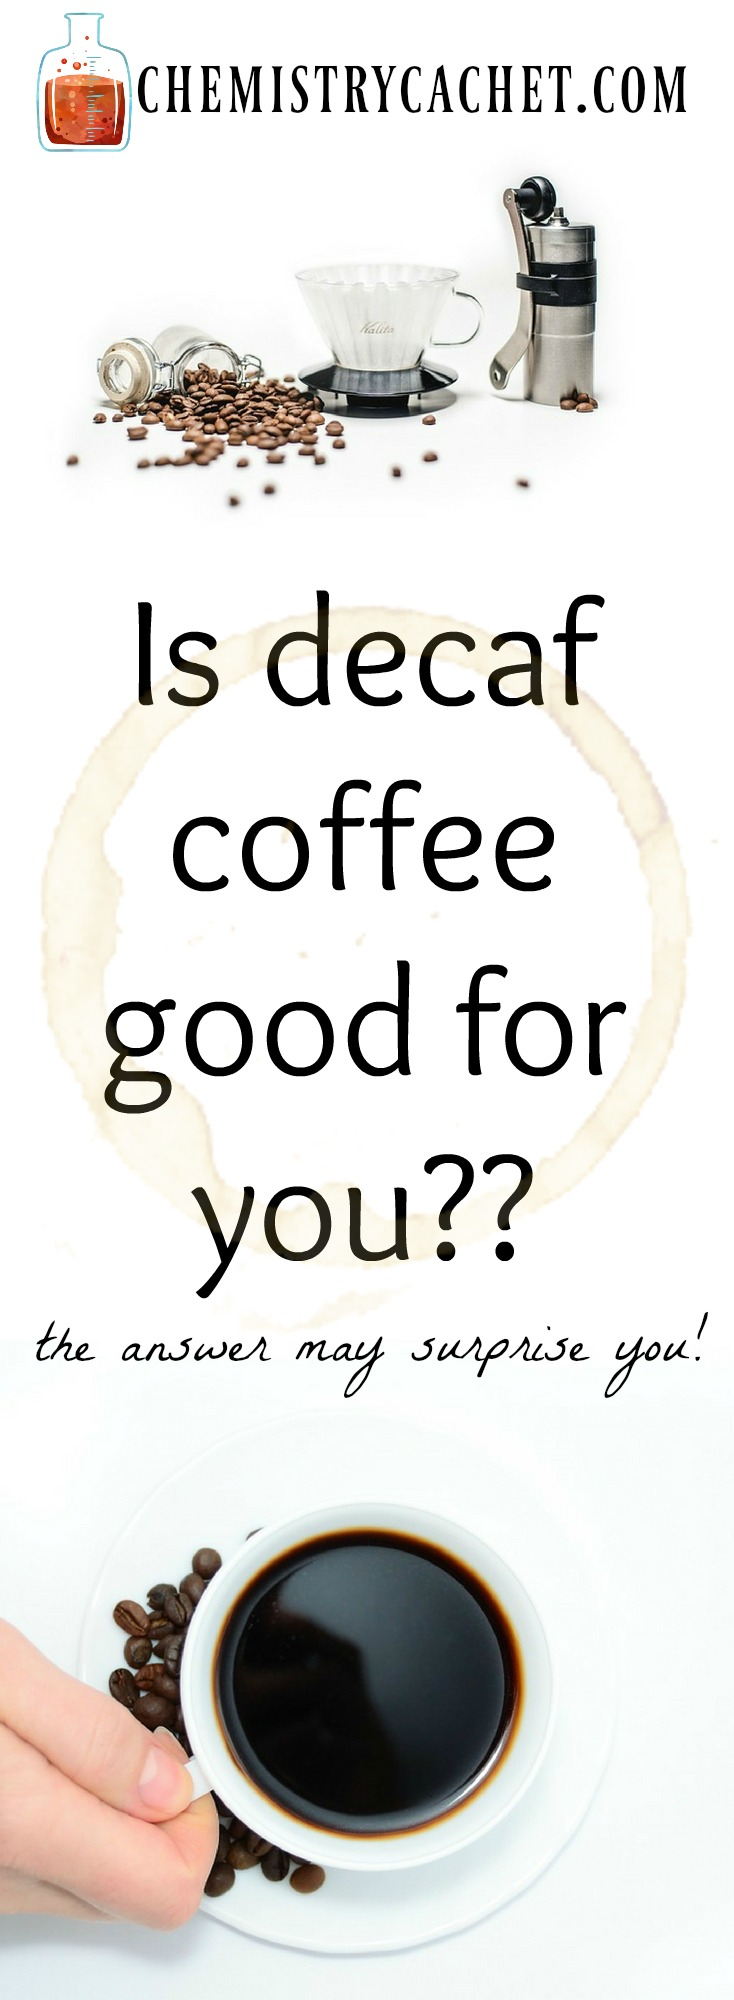 Is decaf even good for you? Should you be drinking decaf? Chemist tips explaining what exactly makes coffee or tea decaf. Also, why it may NOT be good for you on chemistrycachet.com